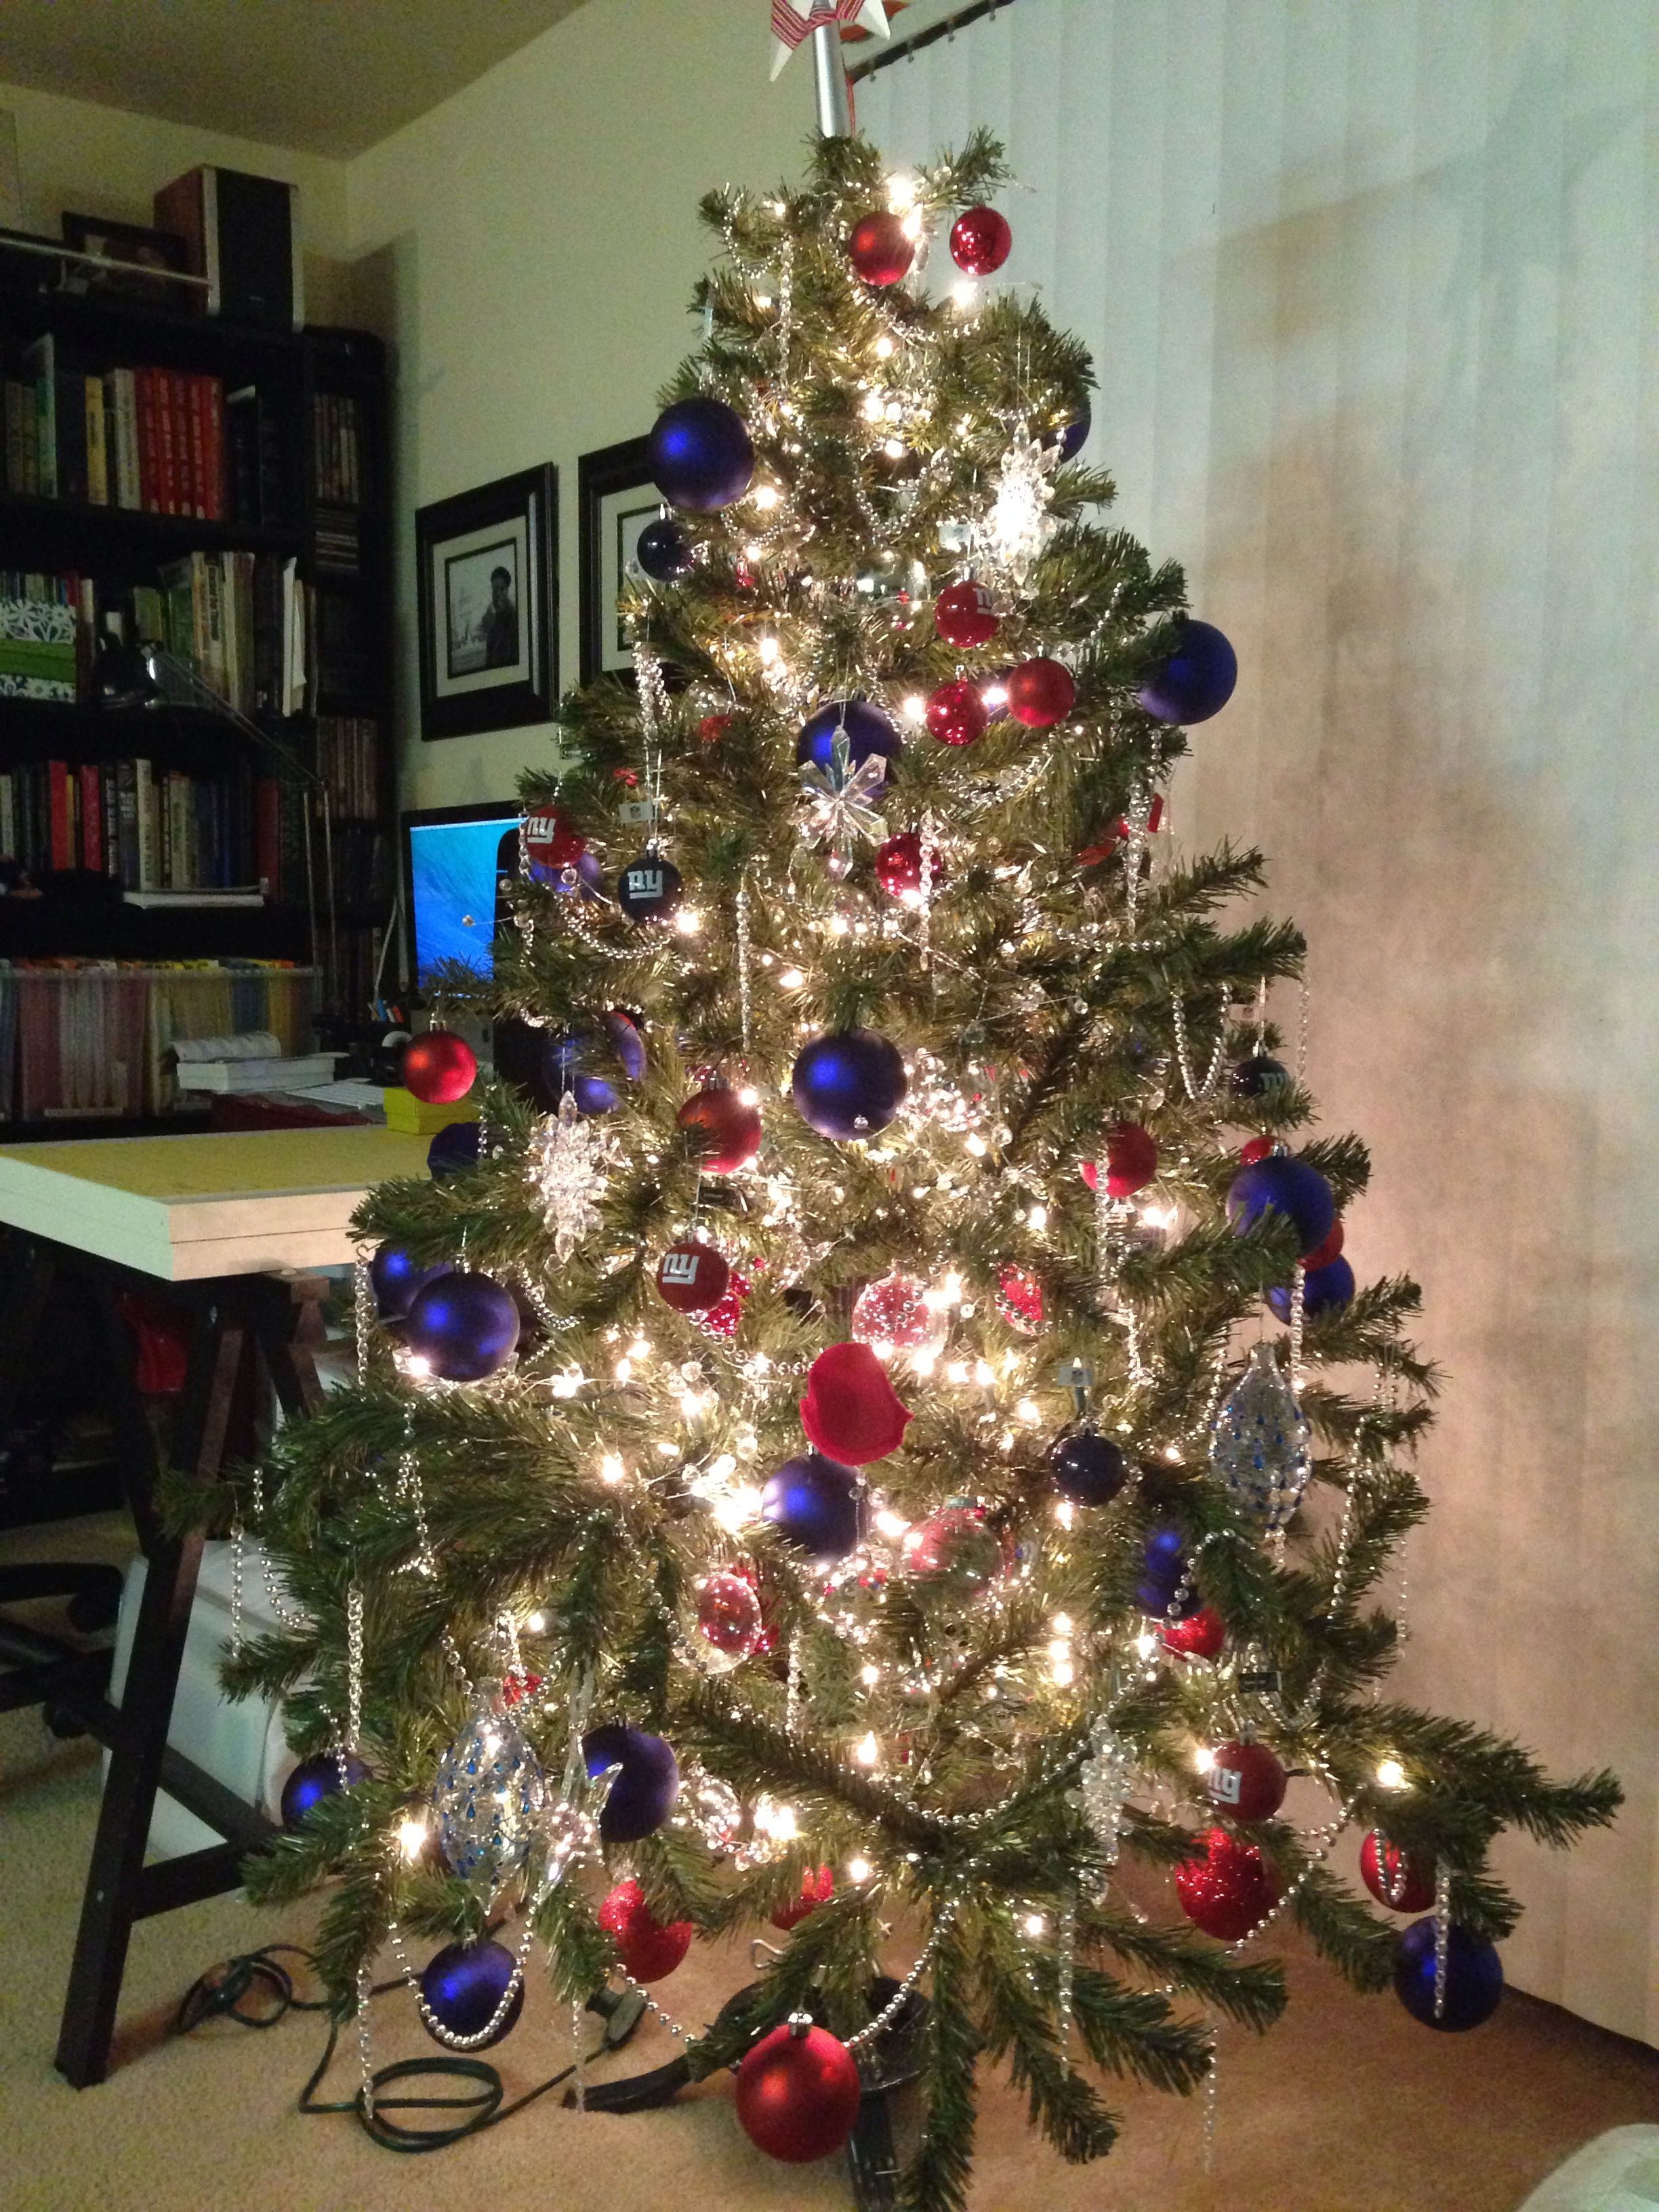 NY Giants Christmas tree | Christmas | Pinterest | Christmas, Giants ...